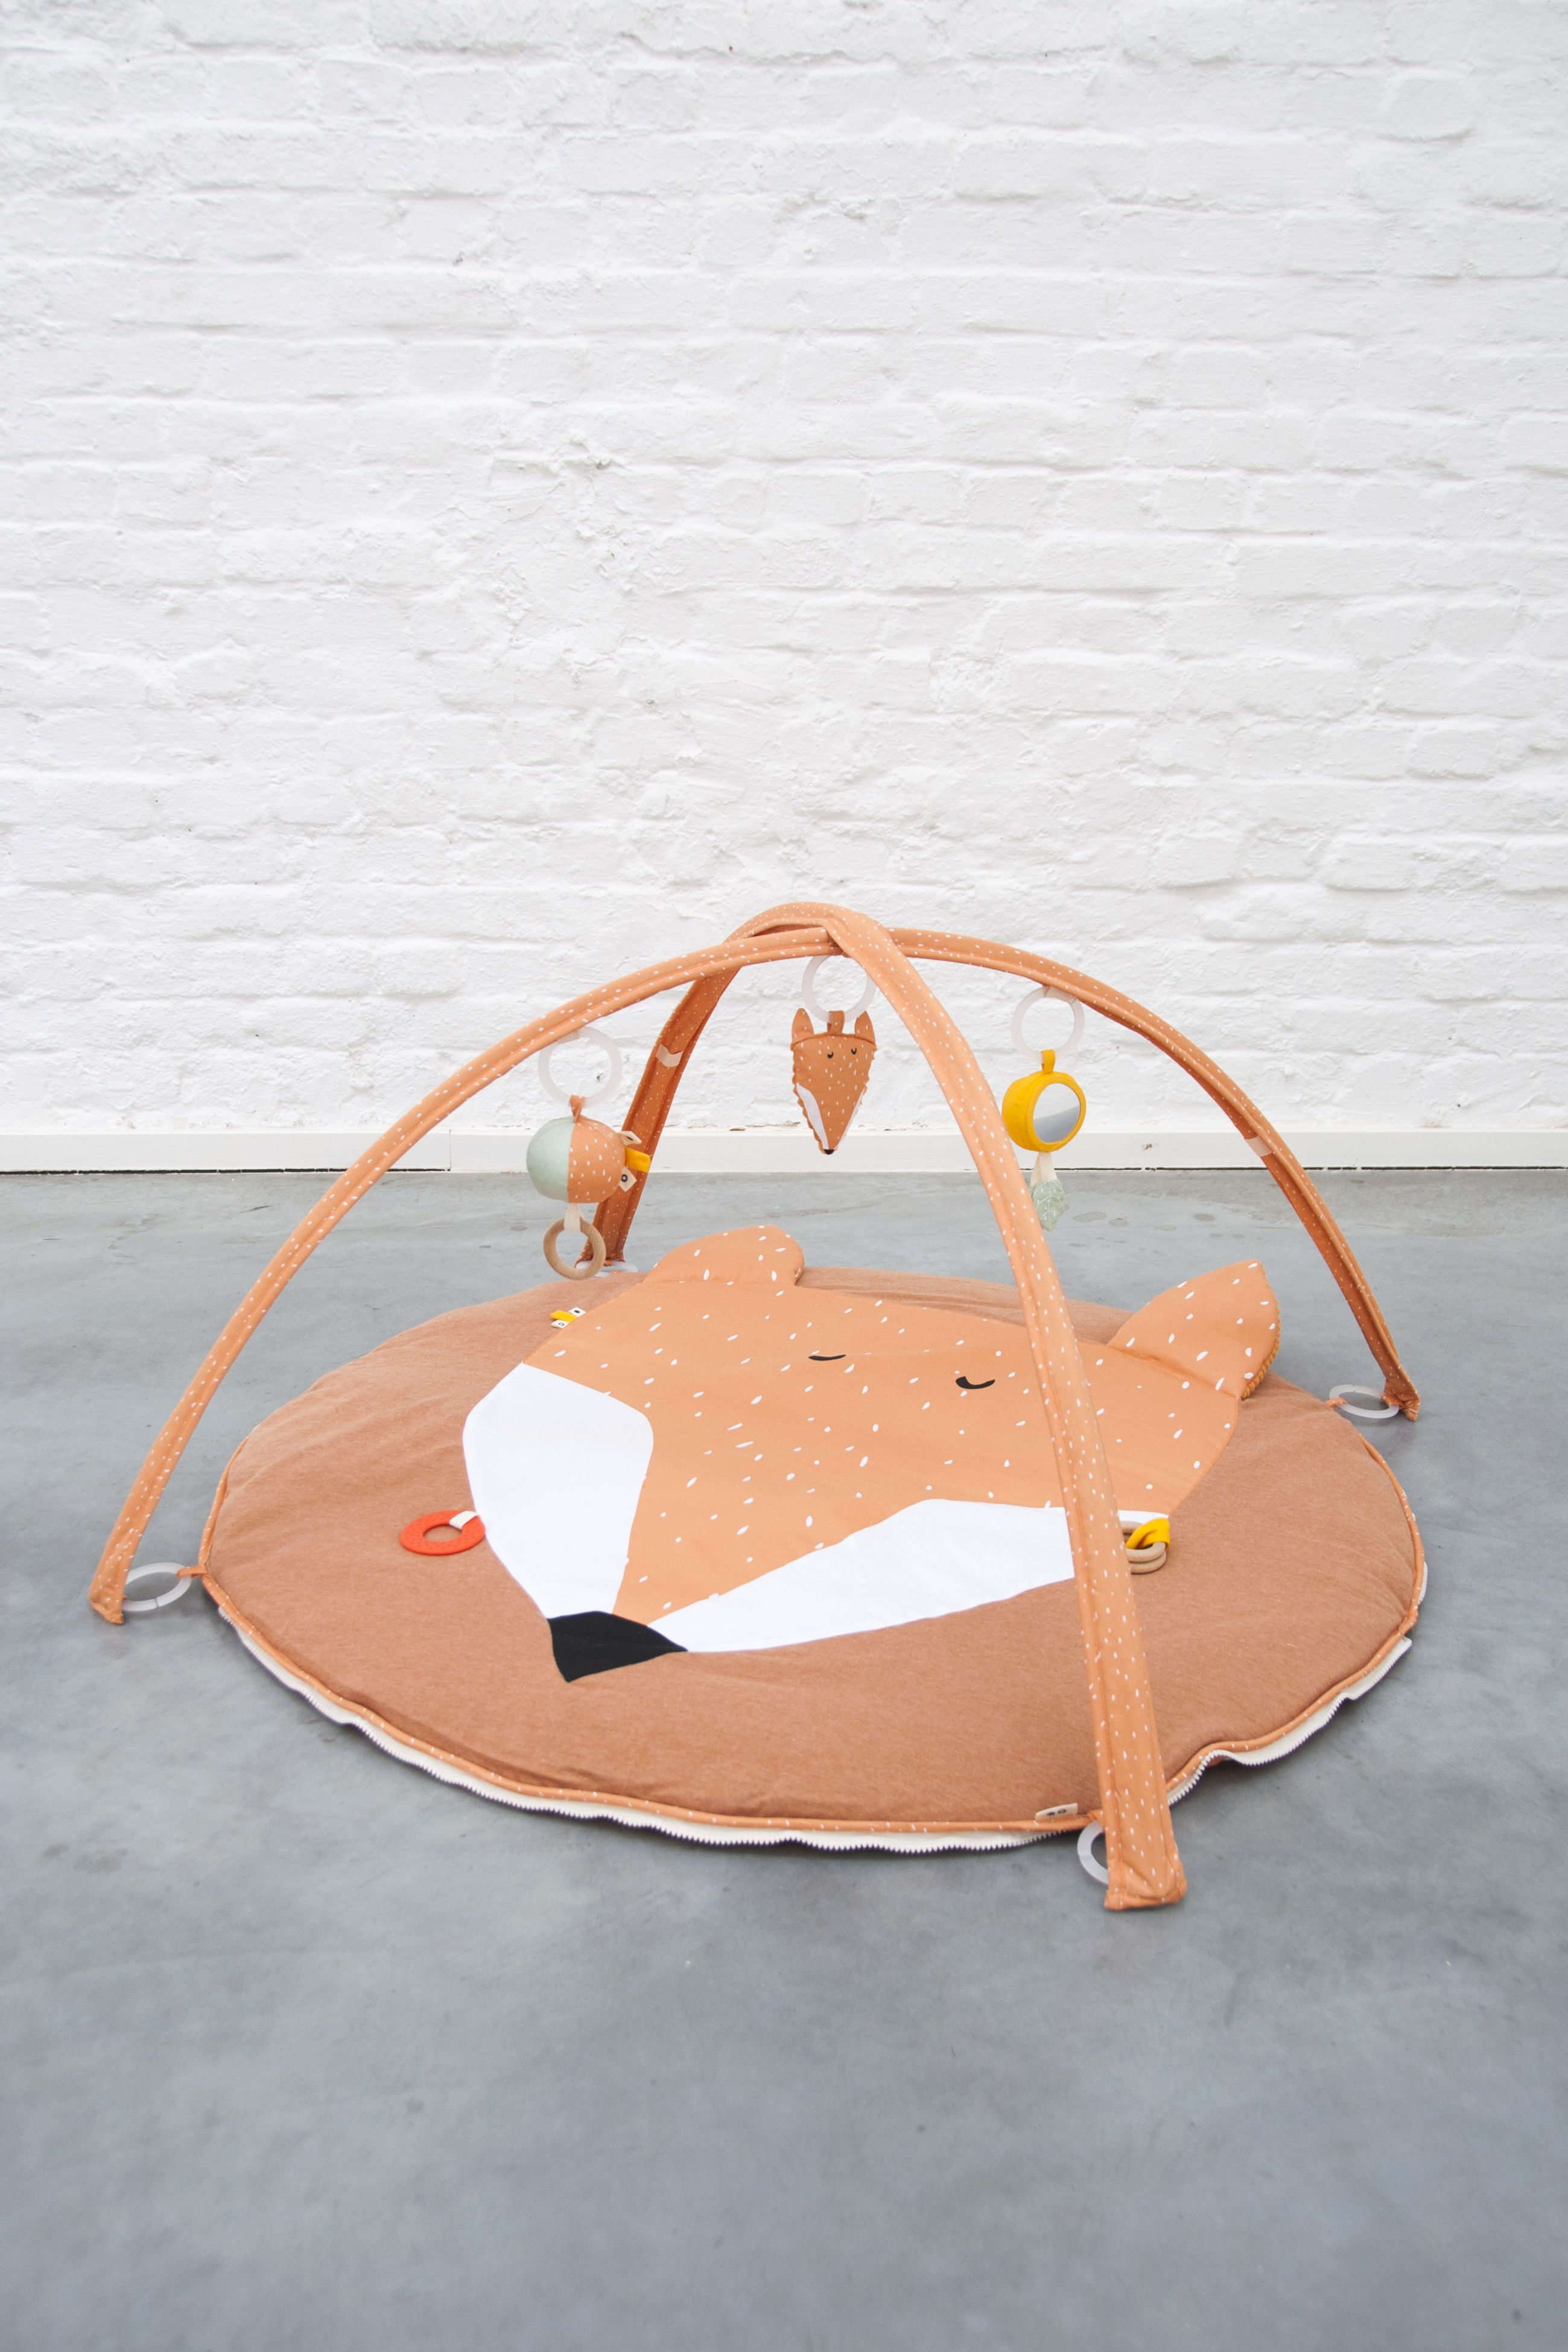 Activity Play Mat With Arches Mr Fox Play Mat Activity Toys Wooden Rings